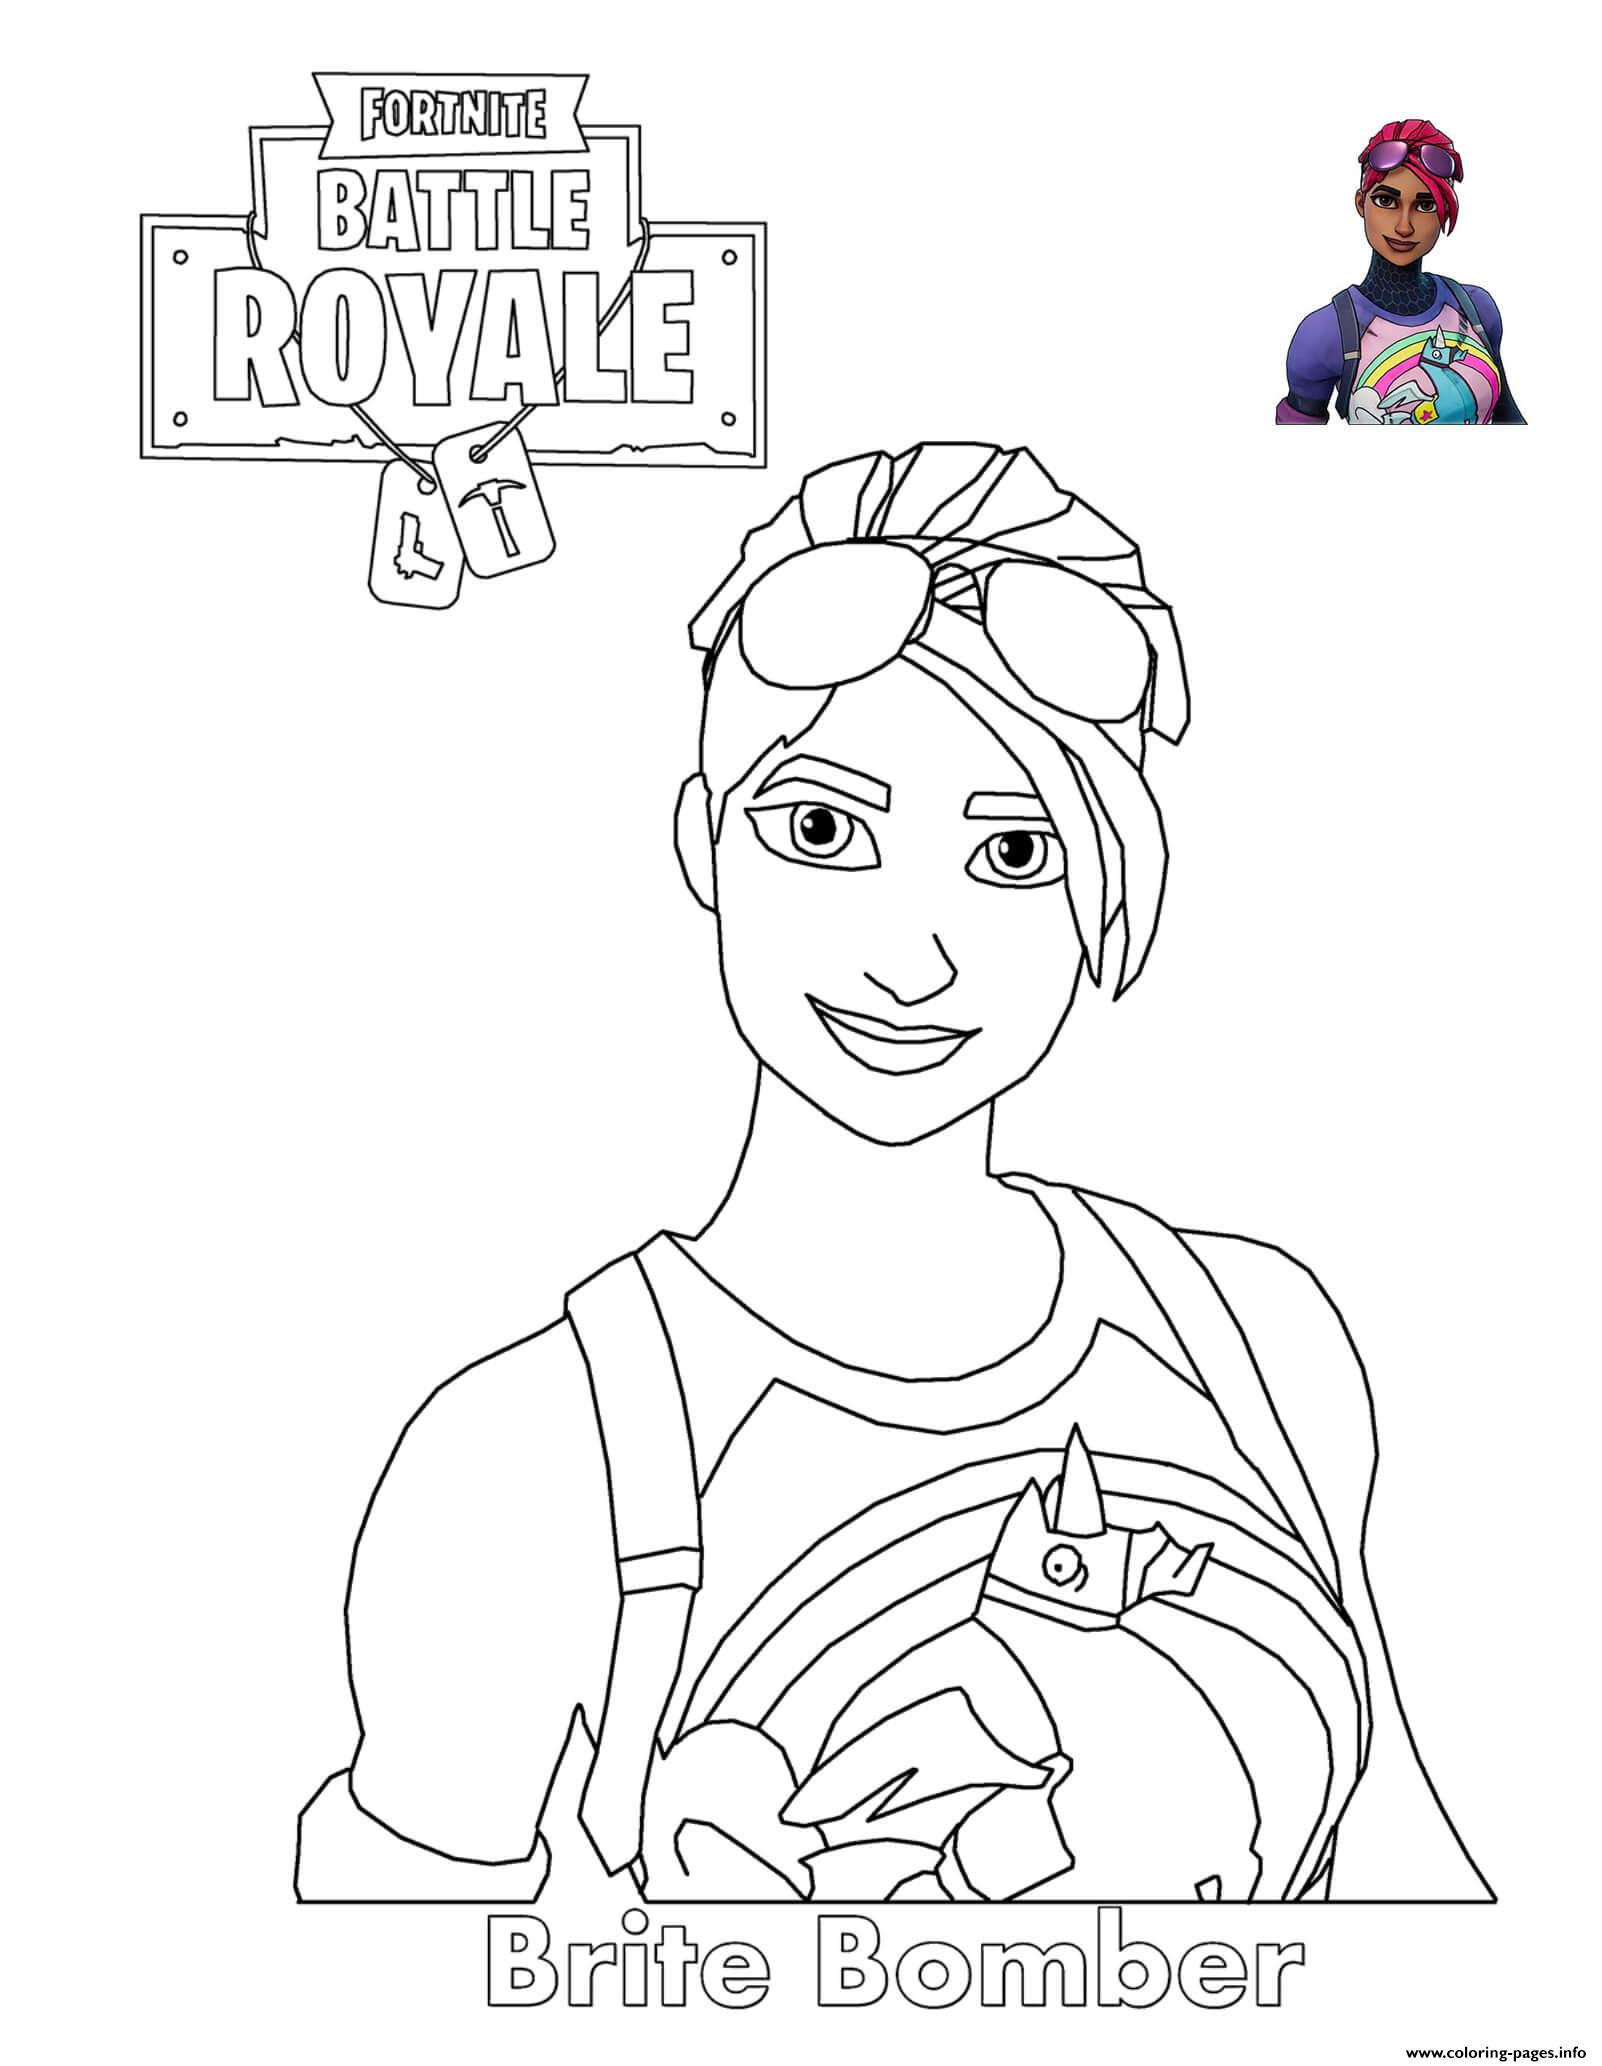 Coloriage Emoji Fortnite.Brite Bomber Fortnite Battle Royale Coloring Pages Printable